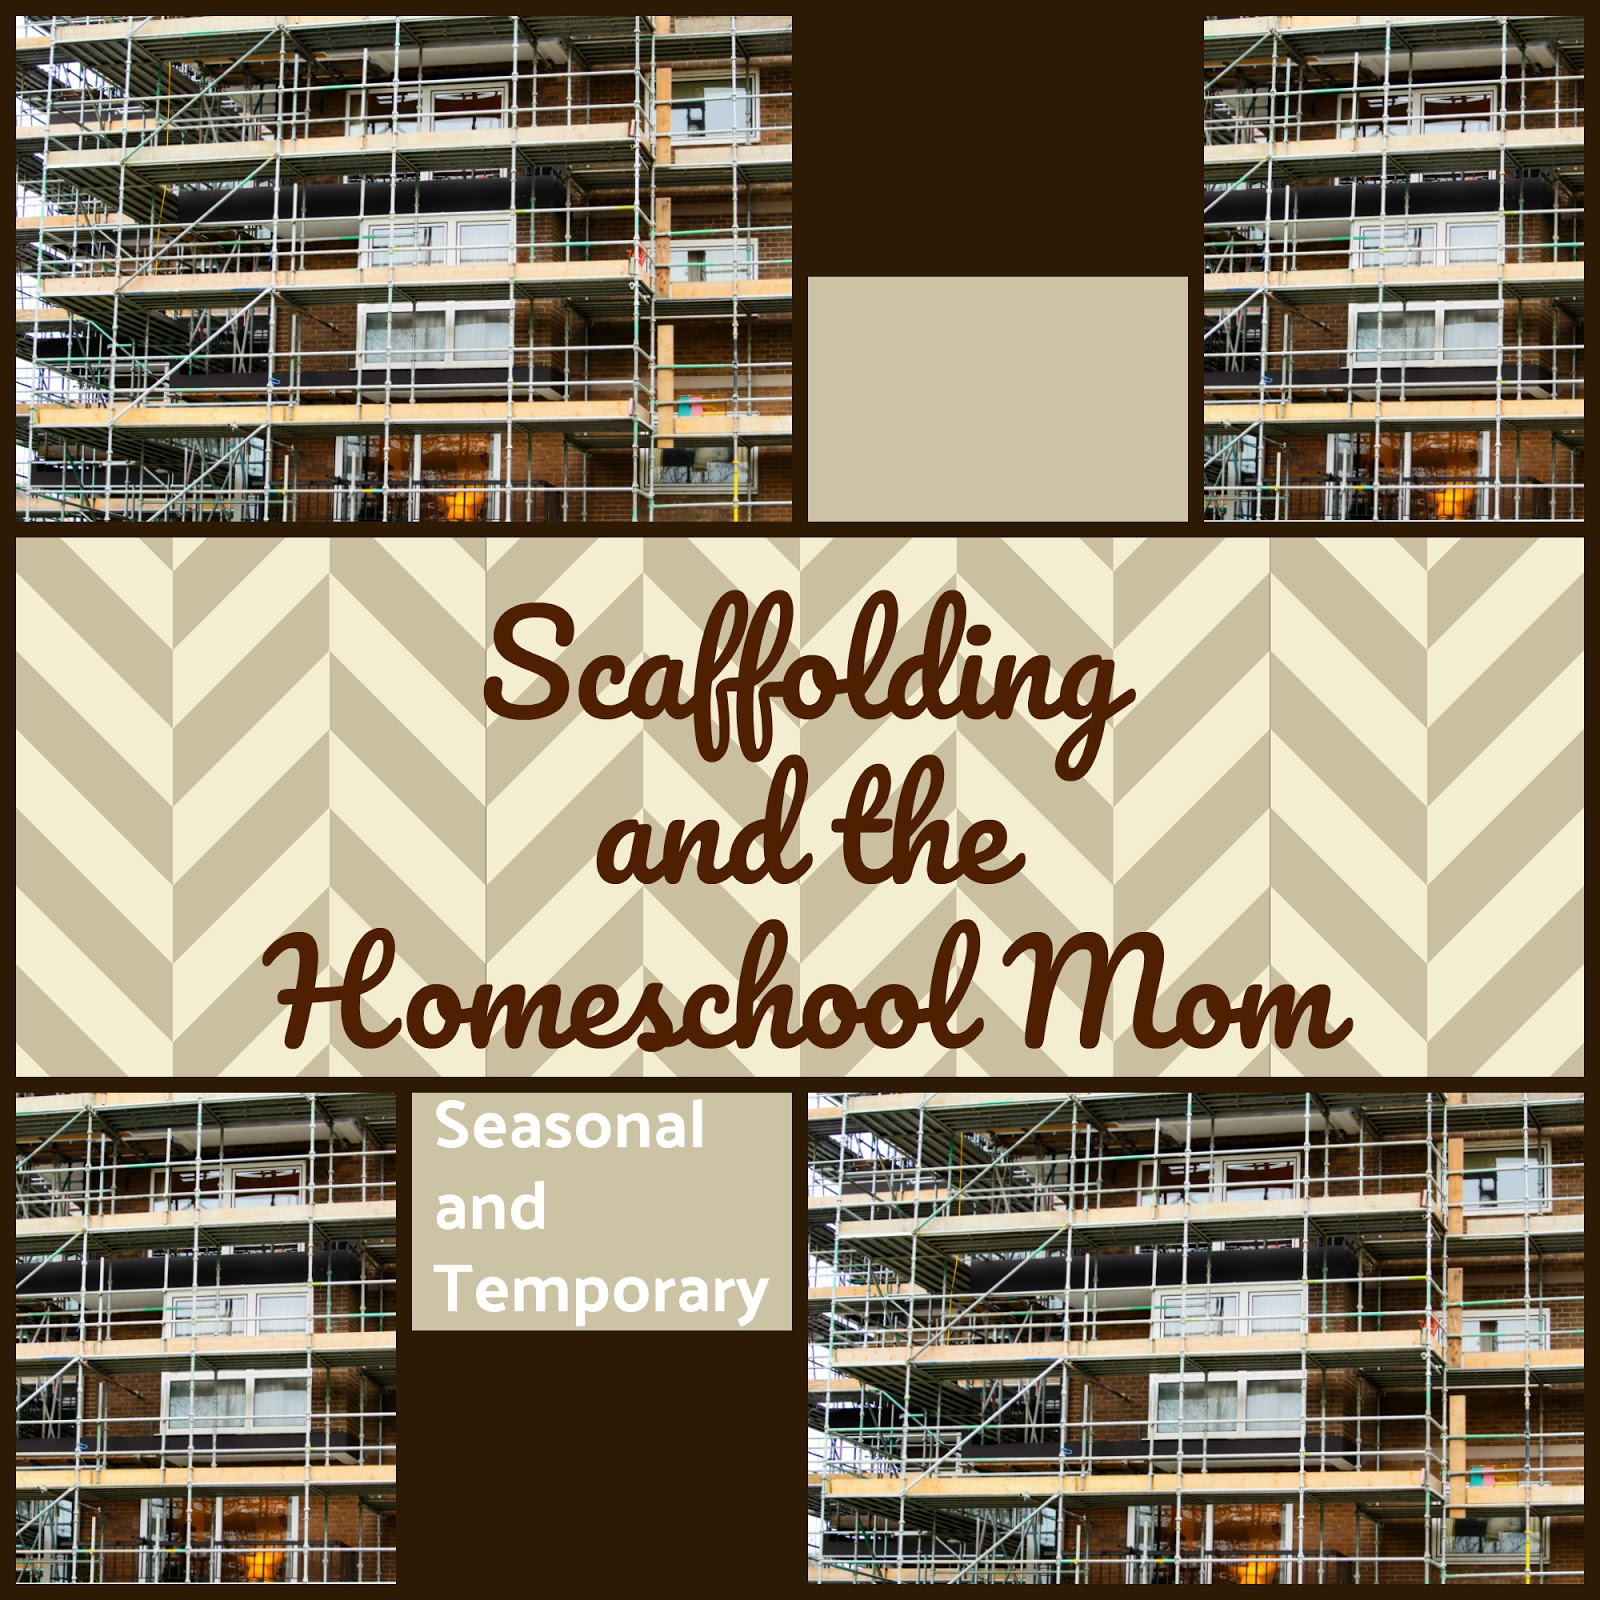 A Mother's Scaffolding is Temporary … it's for a Season